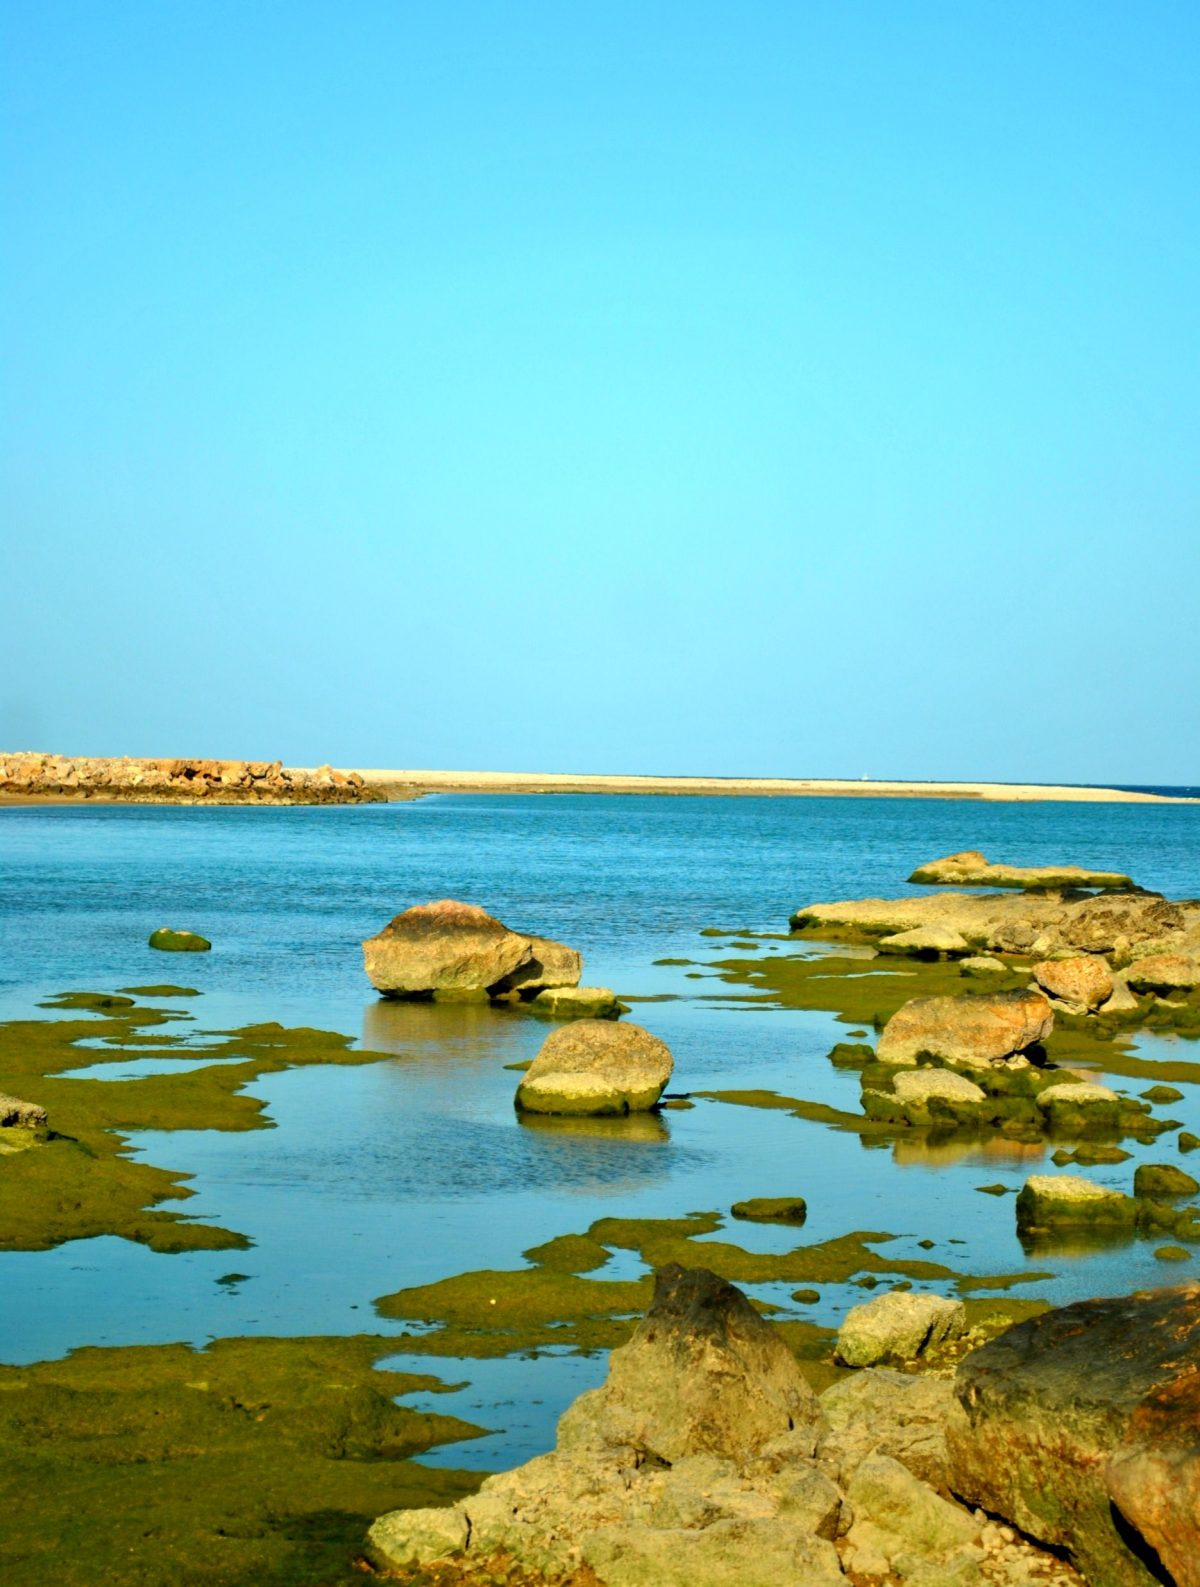 A view from Tiwi Beach, Oman